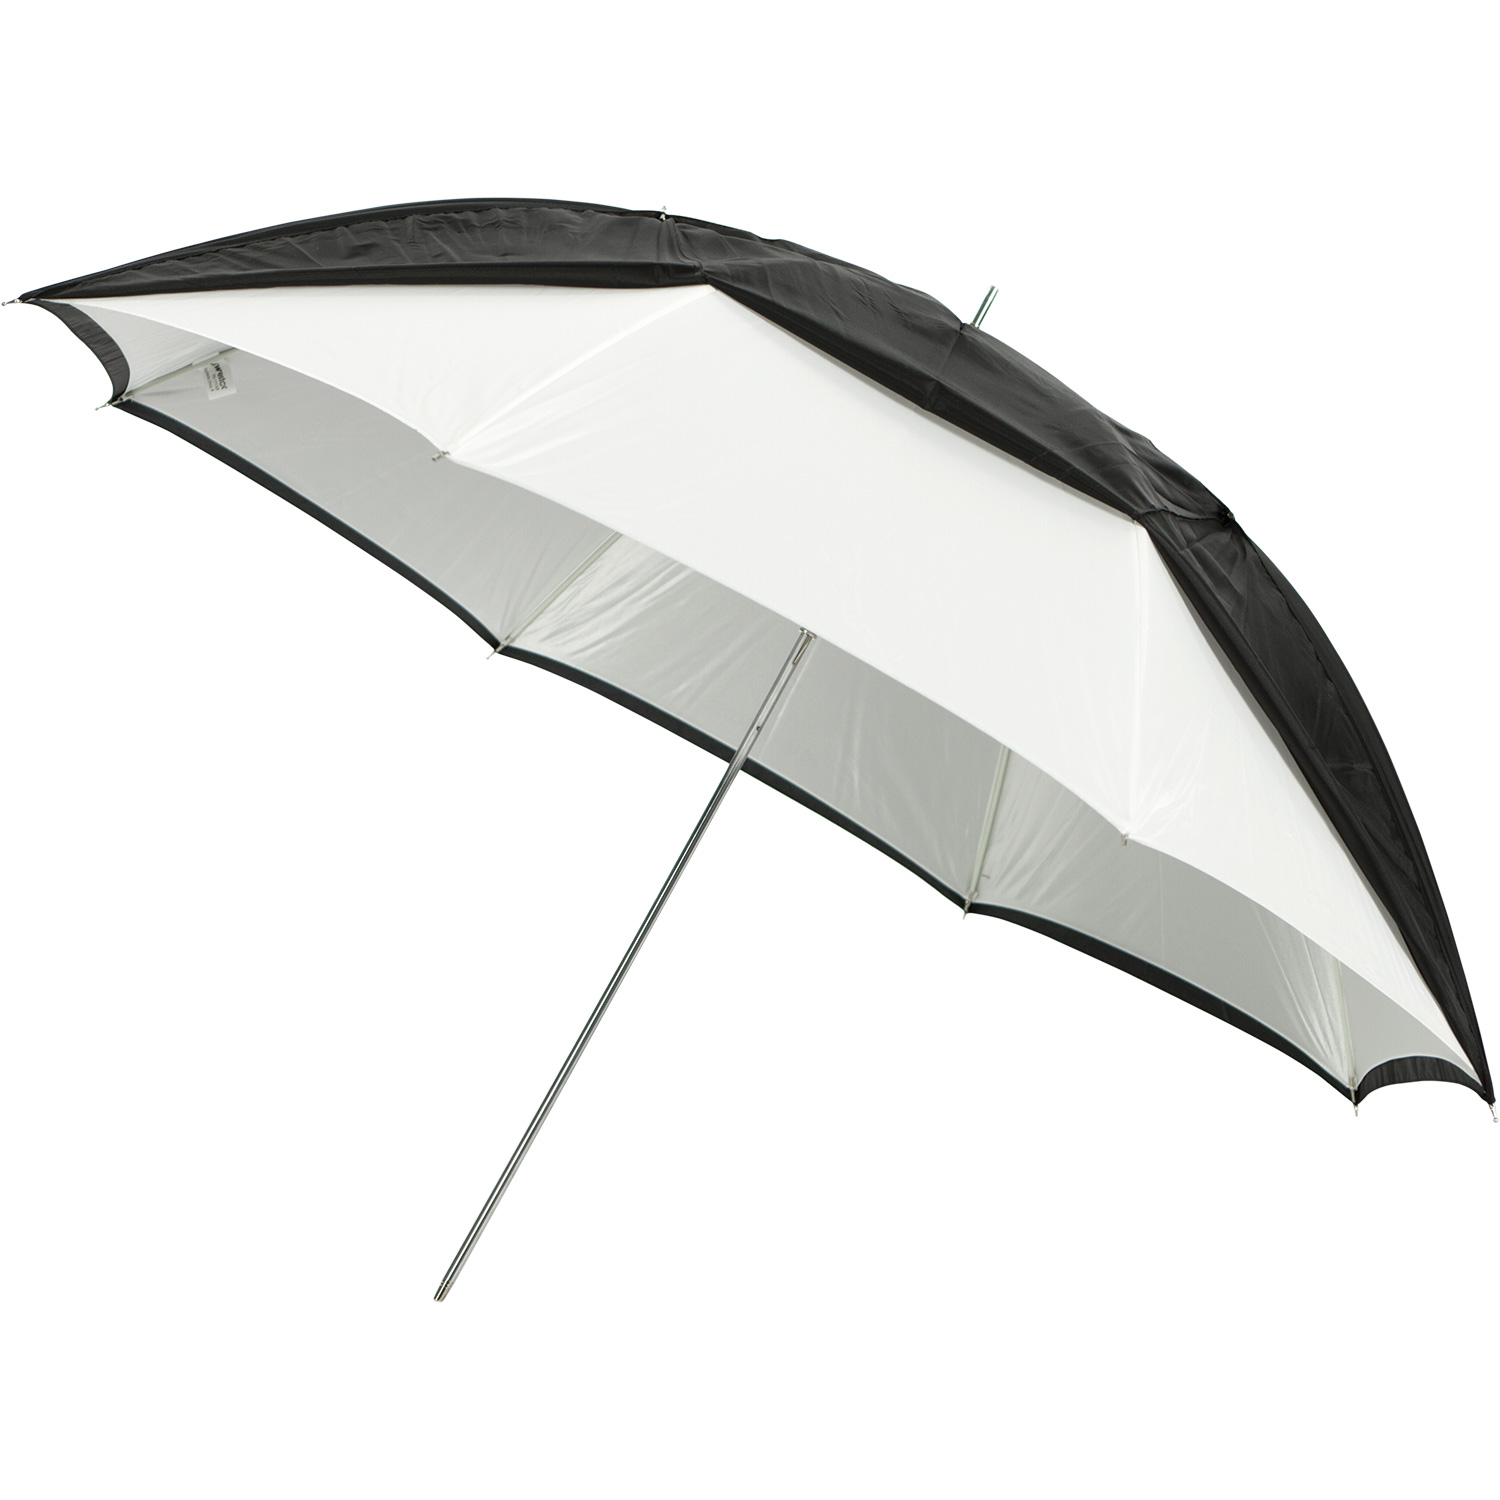 Convertible Umbrella - Optical White Satin with Removable Black Cover (45-in.)